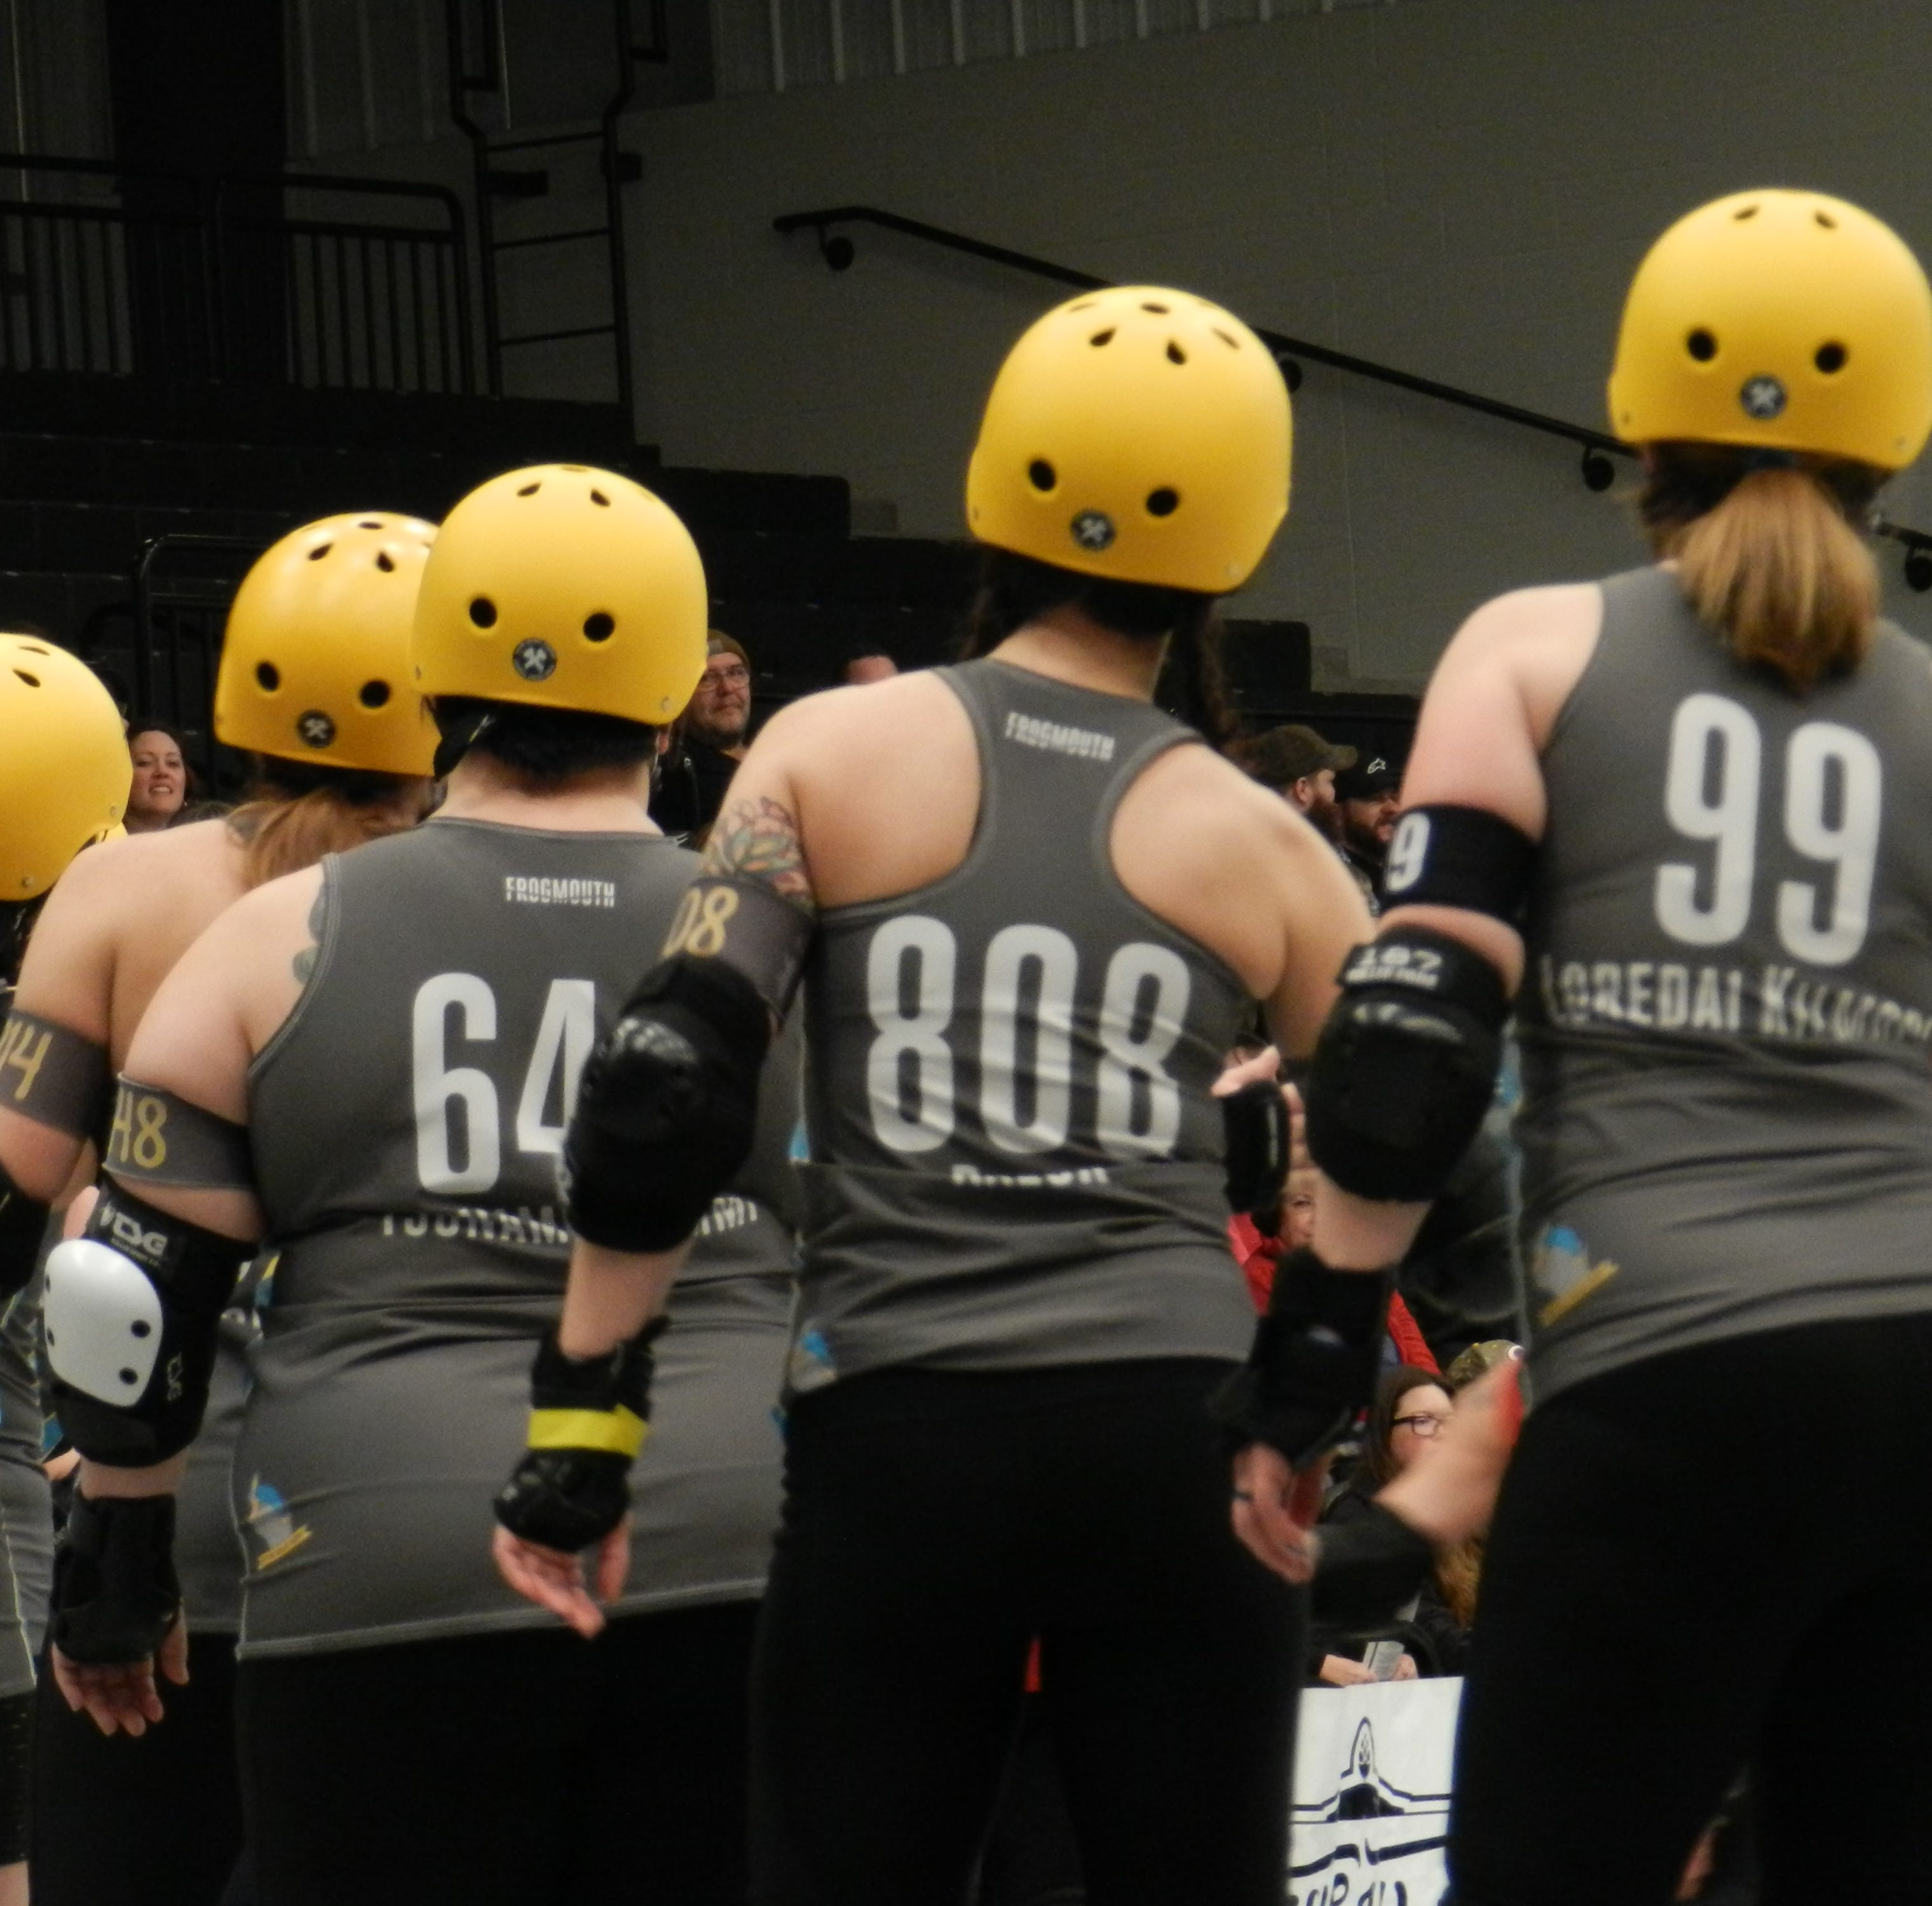 Amid bouts and bruises, Fox Cites Roller Derby creates a family